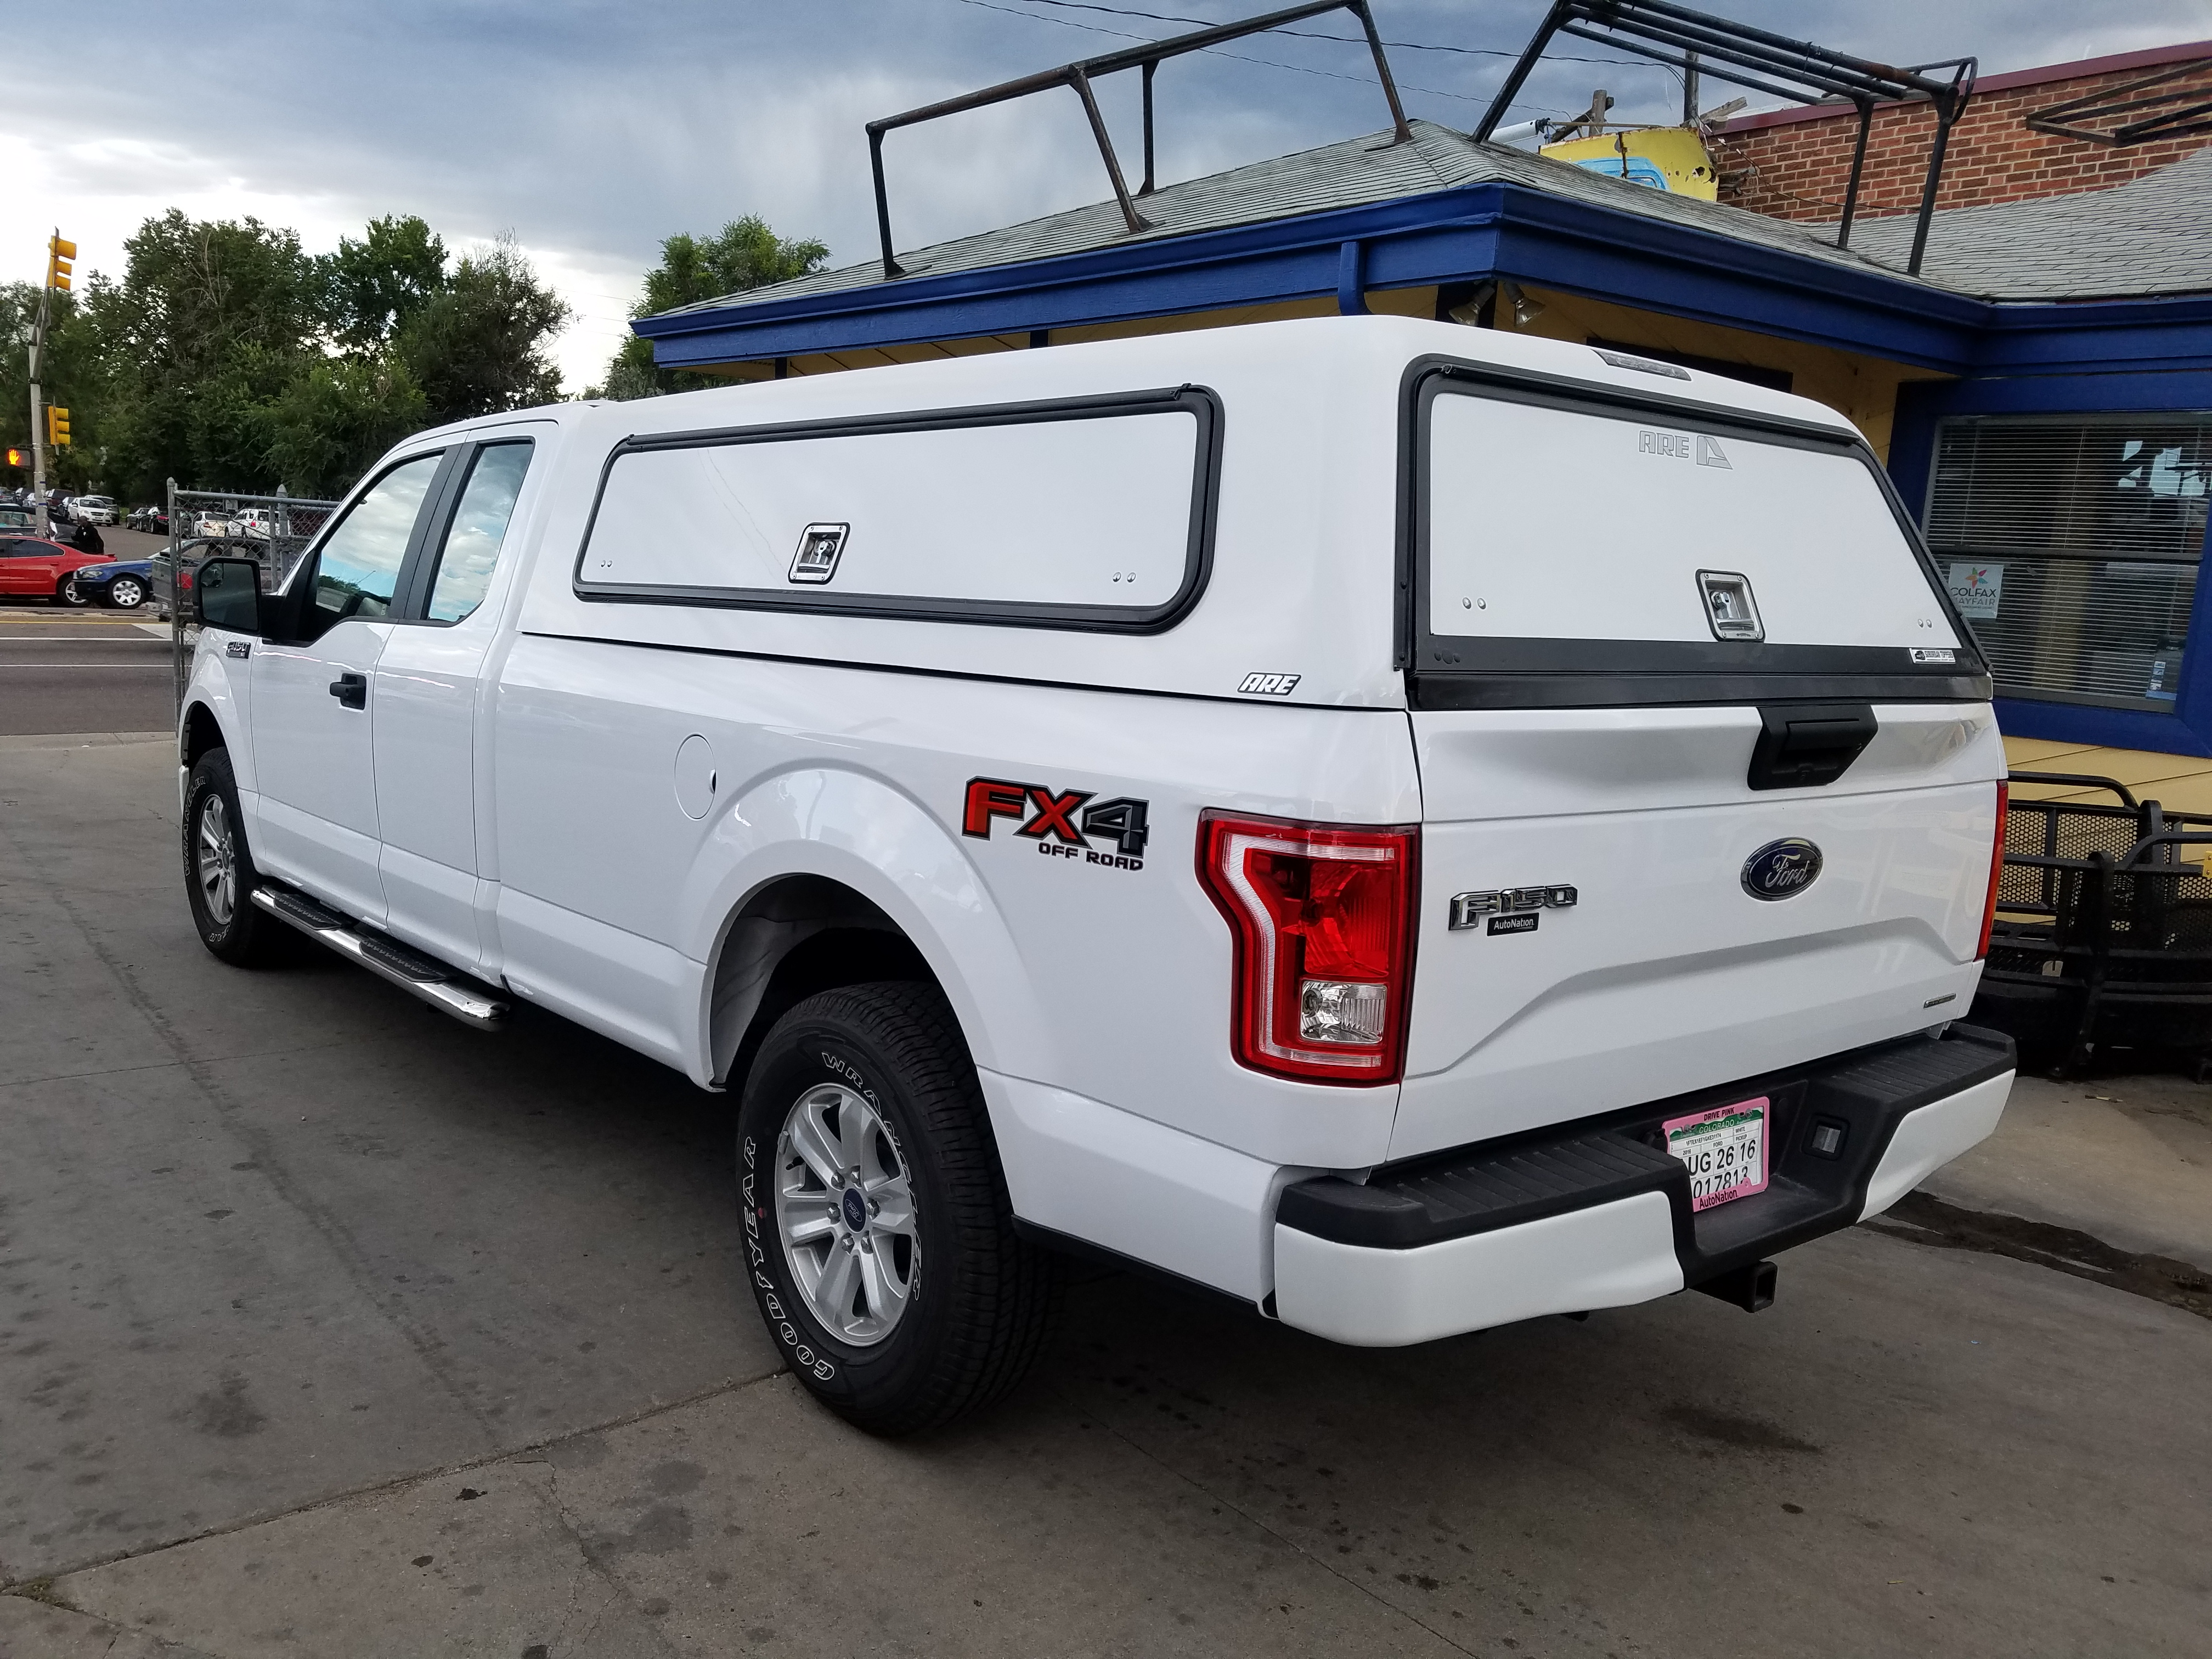 Used Topper For Ford F 250.html | Autos Post